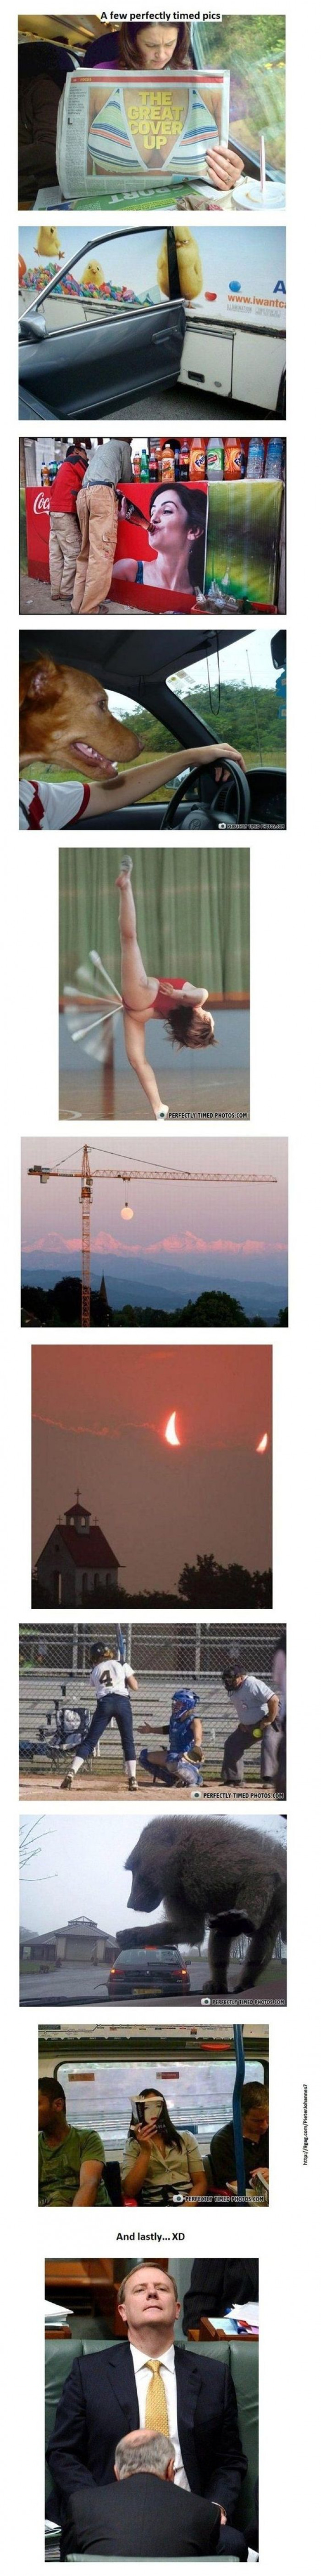 More Perfectly Timed Photos You Must See